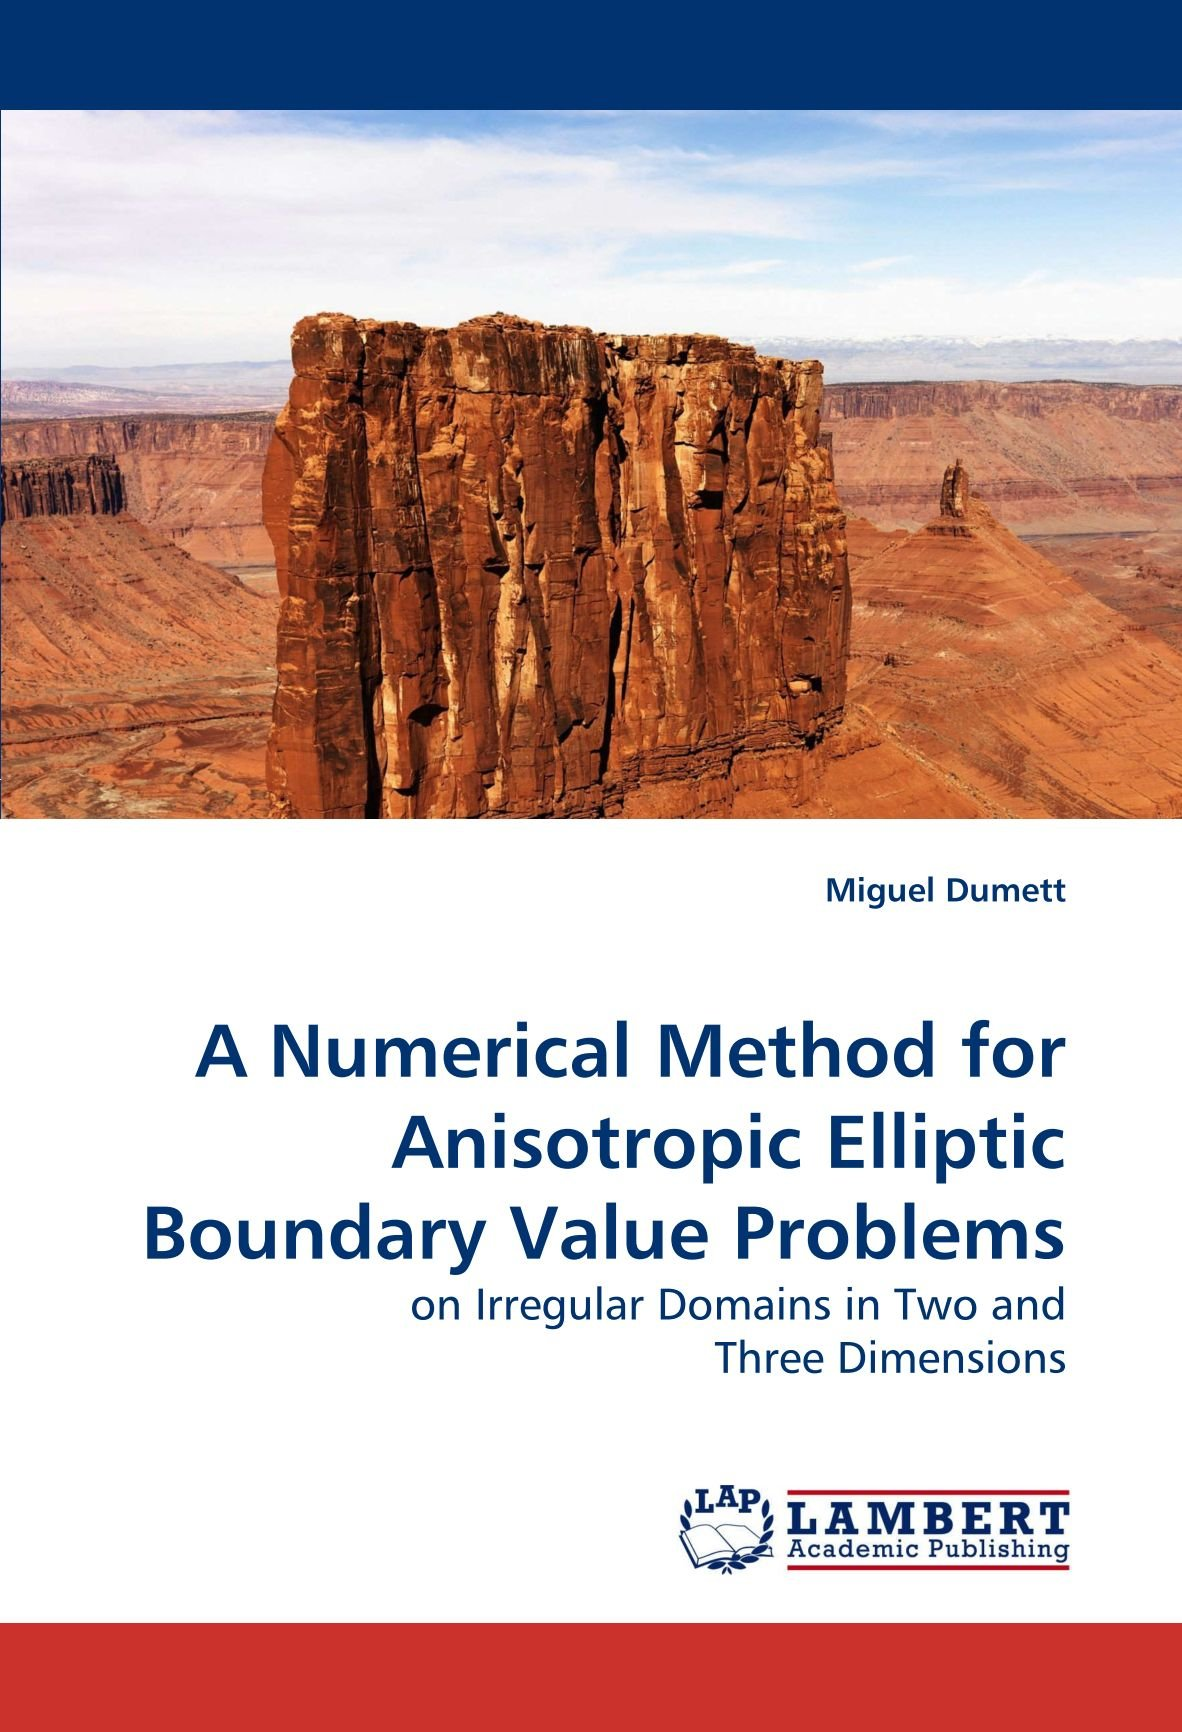 Read Online A Numerical Method for Anisotropic Elliptic Boundary Value Problems: on Irregular Domains in Two and Three Dimensions PDF